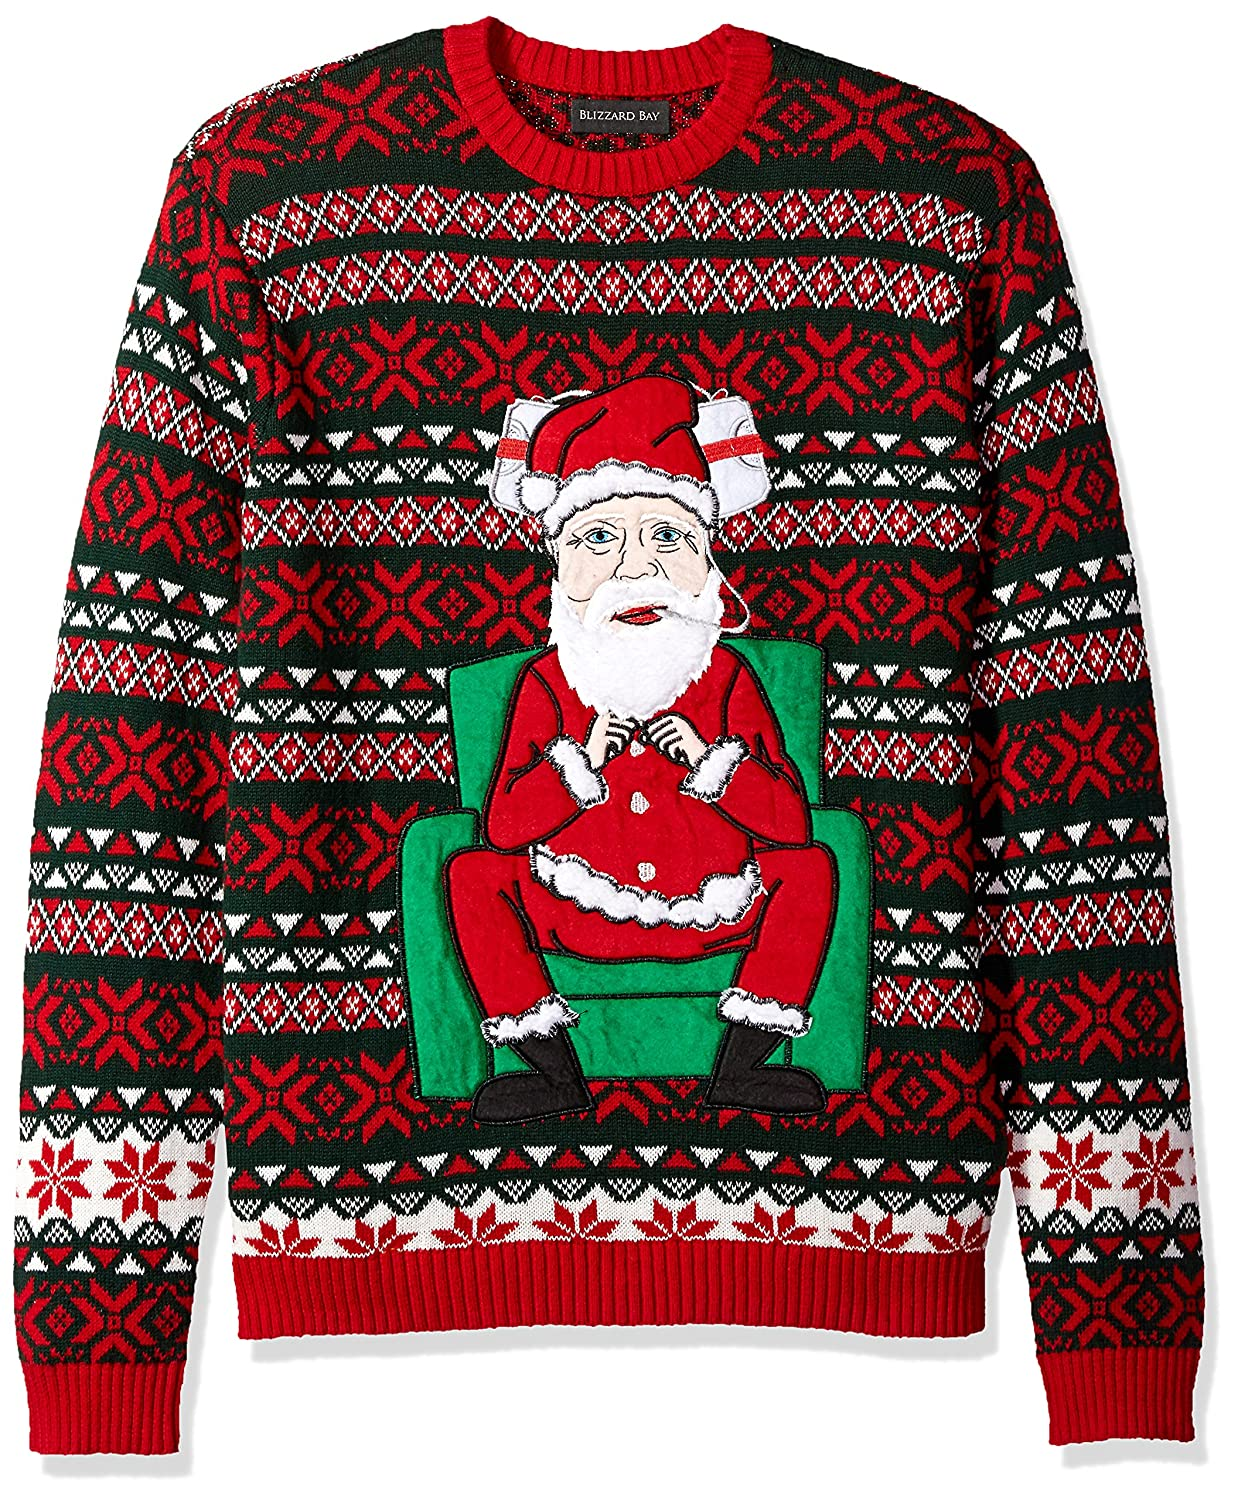 Santa Claus Themed Ugly Christmas Sweater